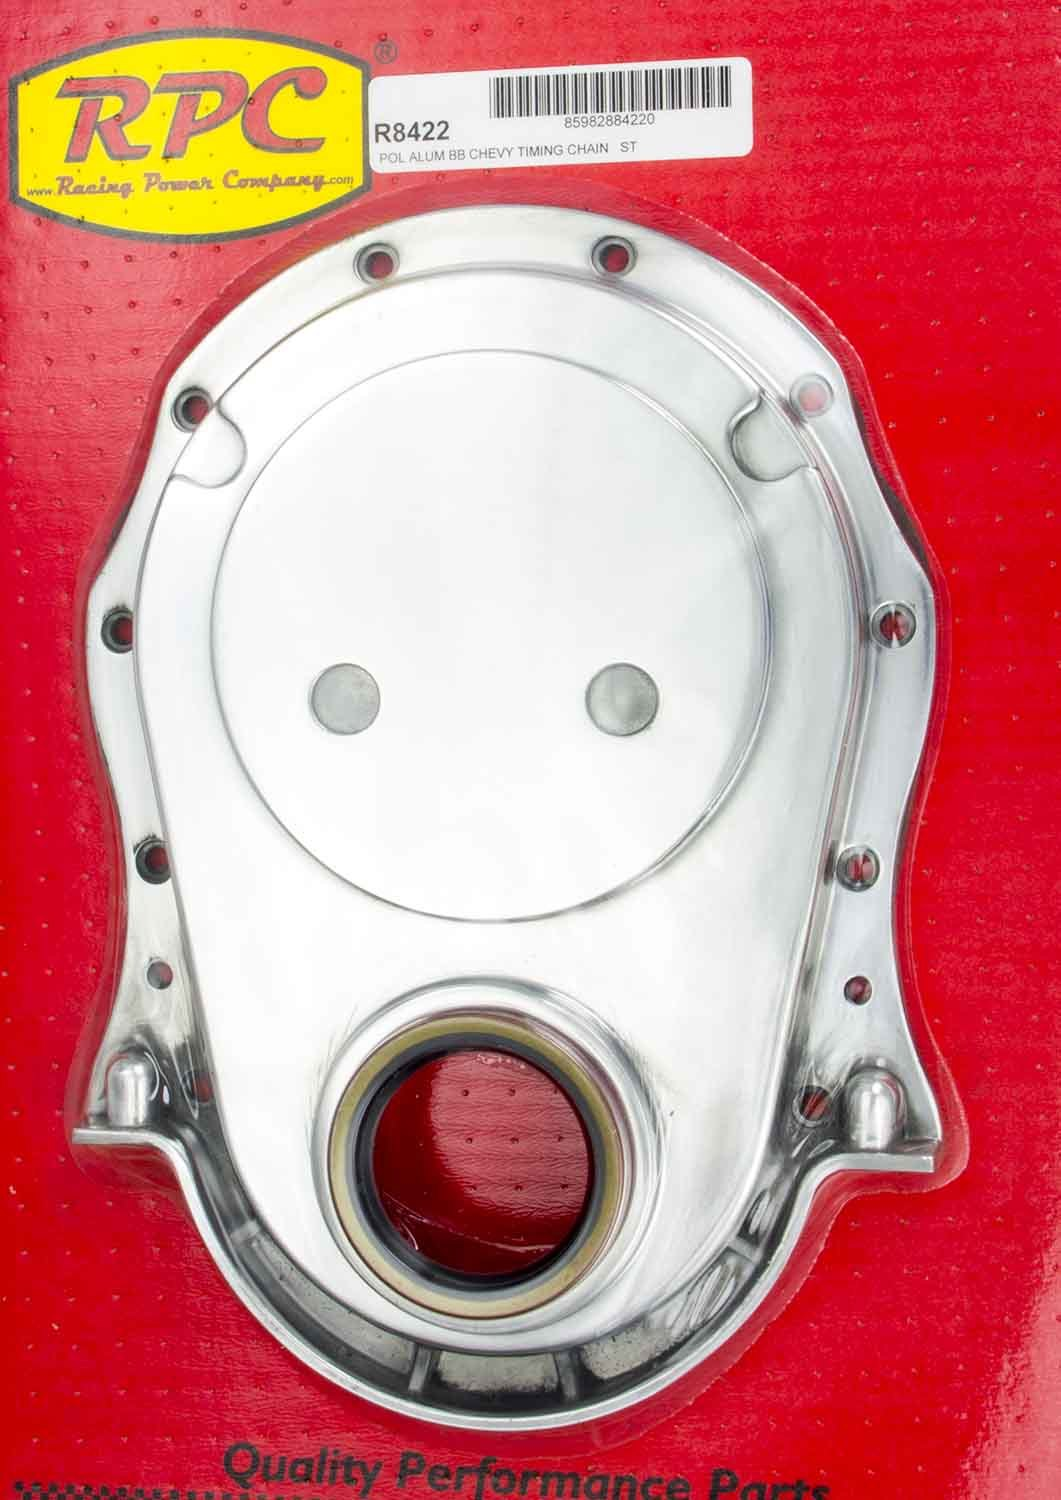 Racing Power Company R8422 Timing Cover, 1 Piece, Gaskets / Hardware / Seal Included, Aluminum, Polished, Big Block Chevy, Each